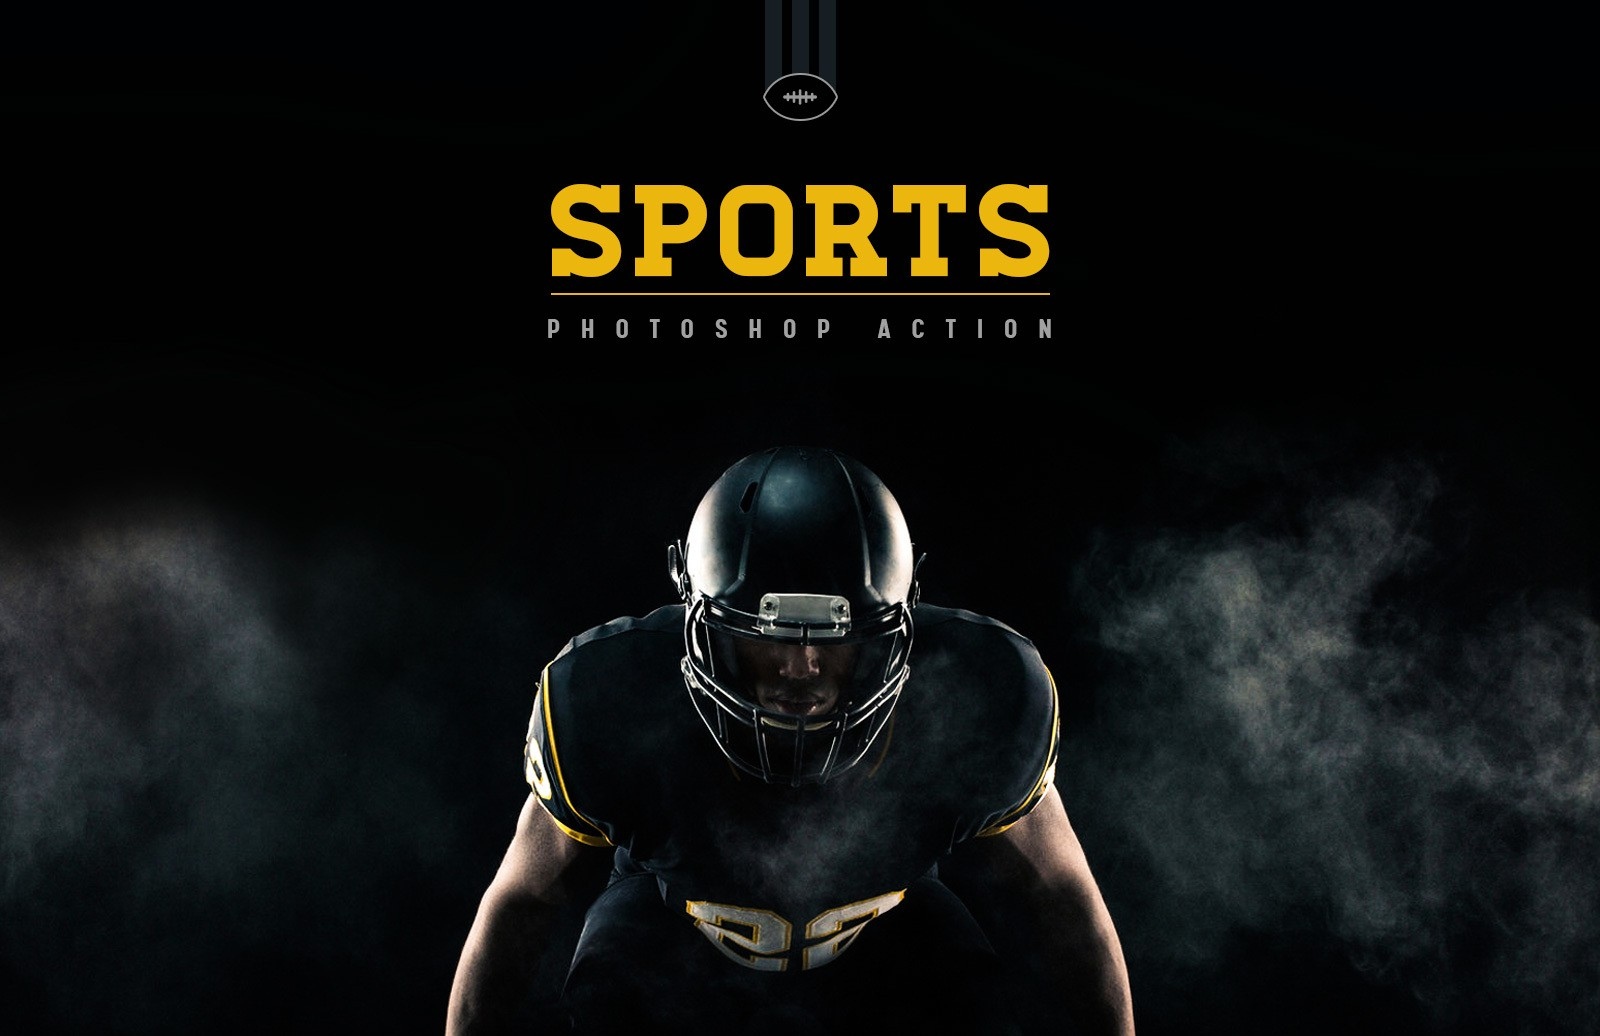 Sports Photoshop Action Preview 1A